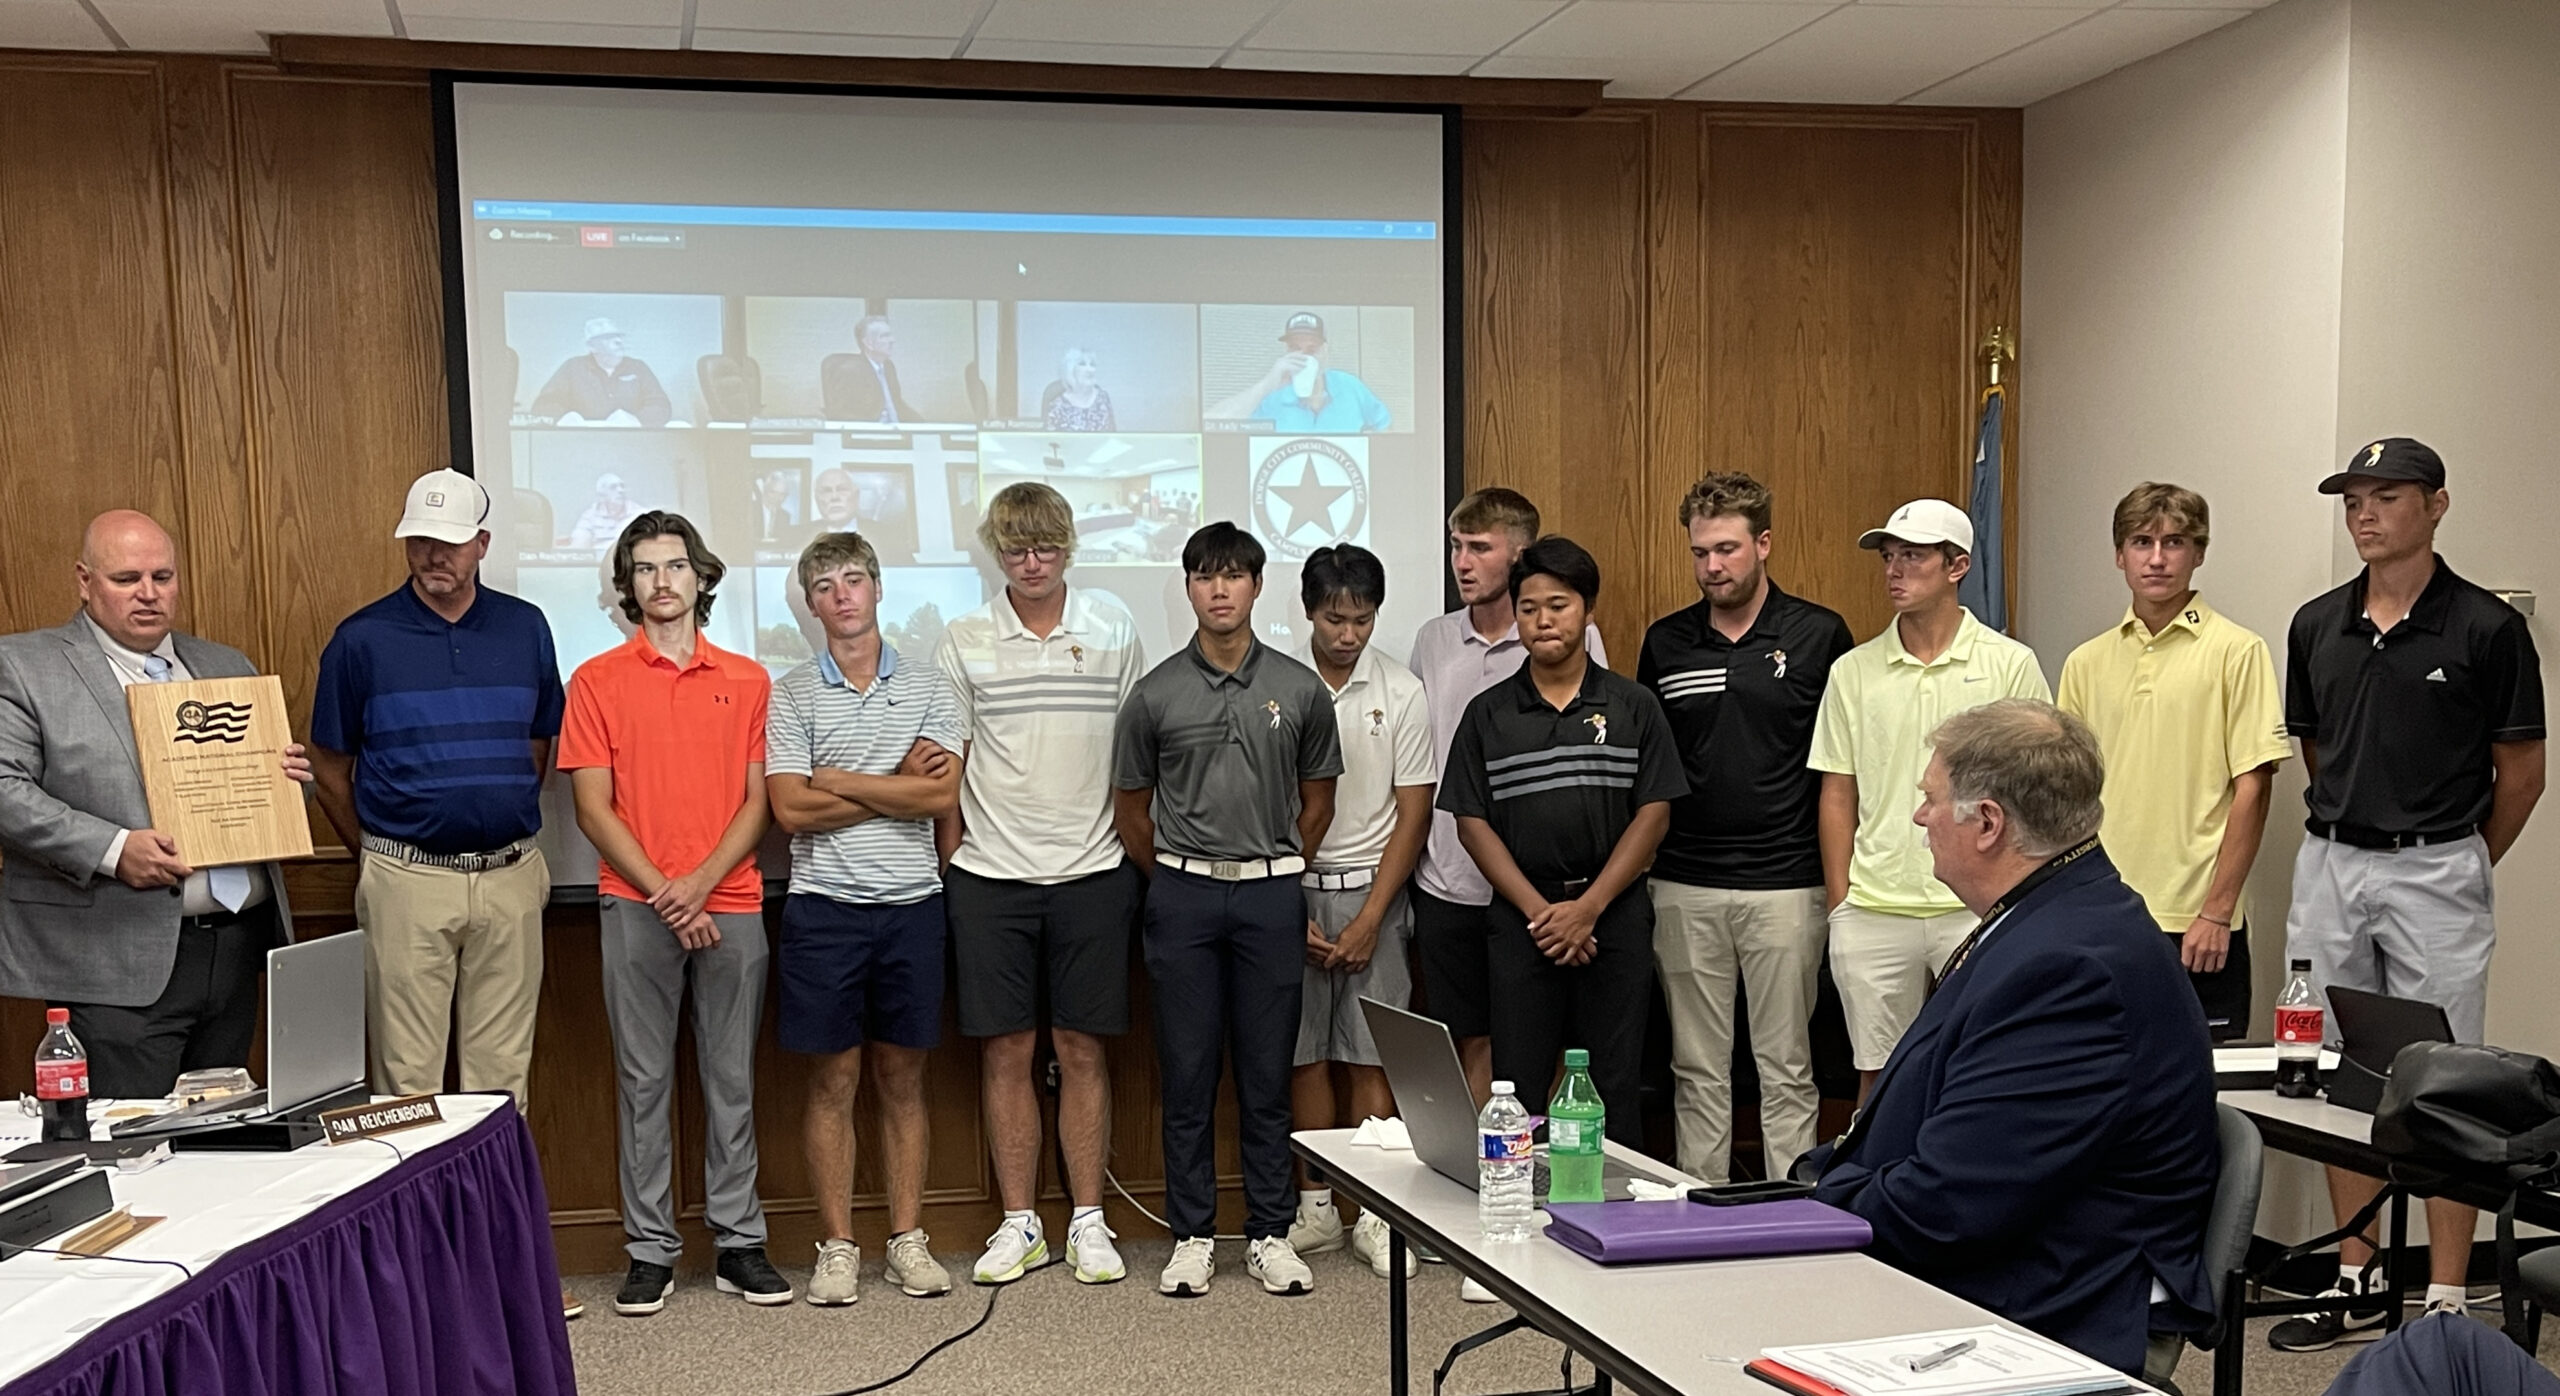 The members of the Dodge City Community College (DC3) men's golf team were recognized at the DC3 Board of Trustees meeting, on Tuesday, Sept. 28, for their recent Academic National Champions award from the Golf Coaches Association of America. Since 2012, the team has won six of these awards, with four of them being back to back. Pictured (left to right) are: Jacob Ripple, DC3 Athletic Director; Chris Robinson, DC3 Men's Golf Head Coach; Luka Stanisavljevic, freshman, South Africa; Brent Reintjes, freshman, Wichita, Kan.; Carson Briggs, sophomore, Broomfield, Colo.; Woramett Bodhidatta, Sophomore, Thailand; Cholnan Nunya, sophomore, Thailand; George Fricker, freshman, England; Kitsakon Jairak, sophomore, Thailand; Evan Lindsey, sophomore, Magnolia, Ark.; Cole Streck, freshman, Great Bend, Kan.; Austin Goodrum, freshman, Andover, Kan.; and Davan Smith, freshman, Dodge City, Kan. Not pictured is Supakit Seelanagae, freshman, Thailand. [Photo by Christina Haselhorst]